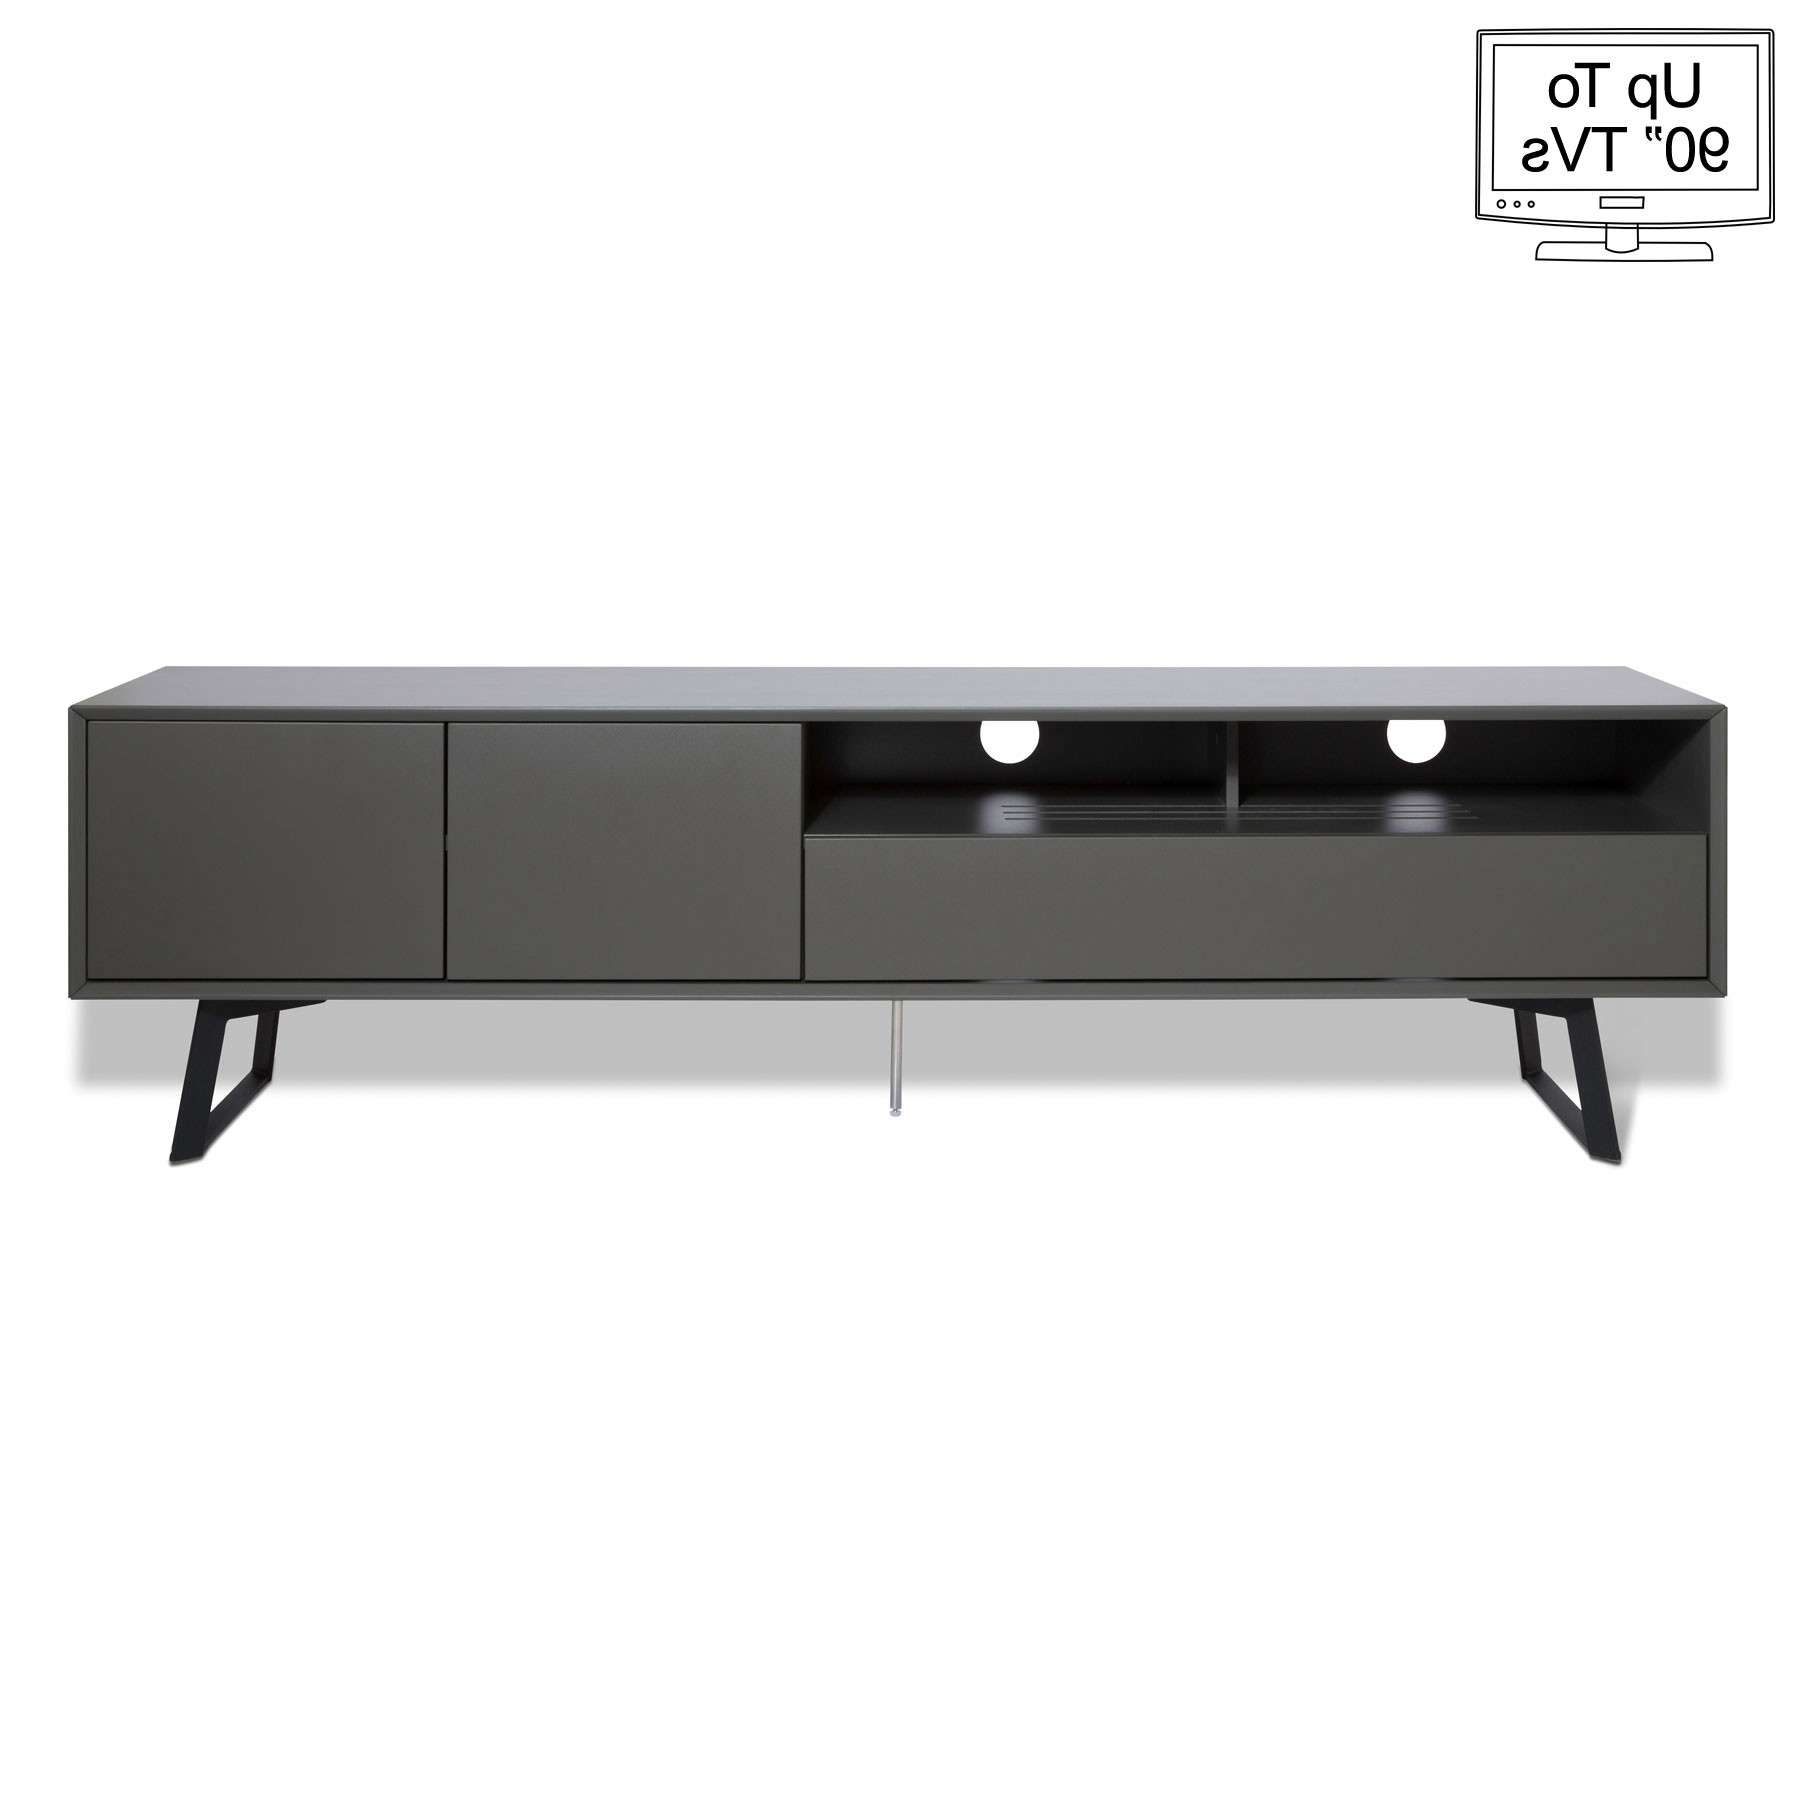 Tv Units | Tv Stands | Tv Cabinets | Tv Units With Storage Intended For Illuminated Tv Stands (View 19 of 20)